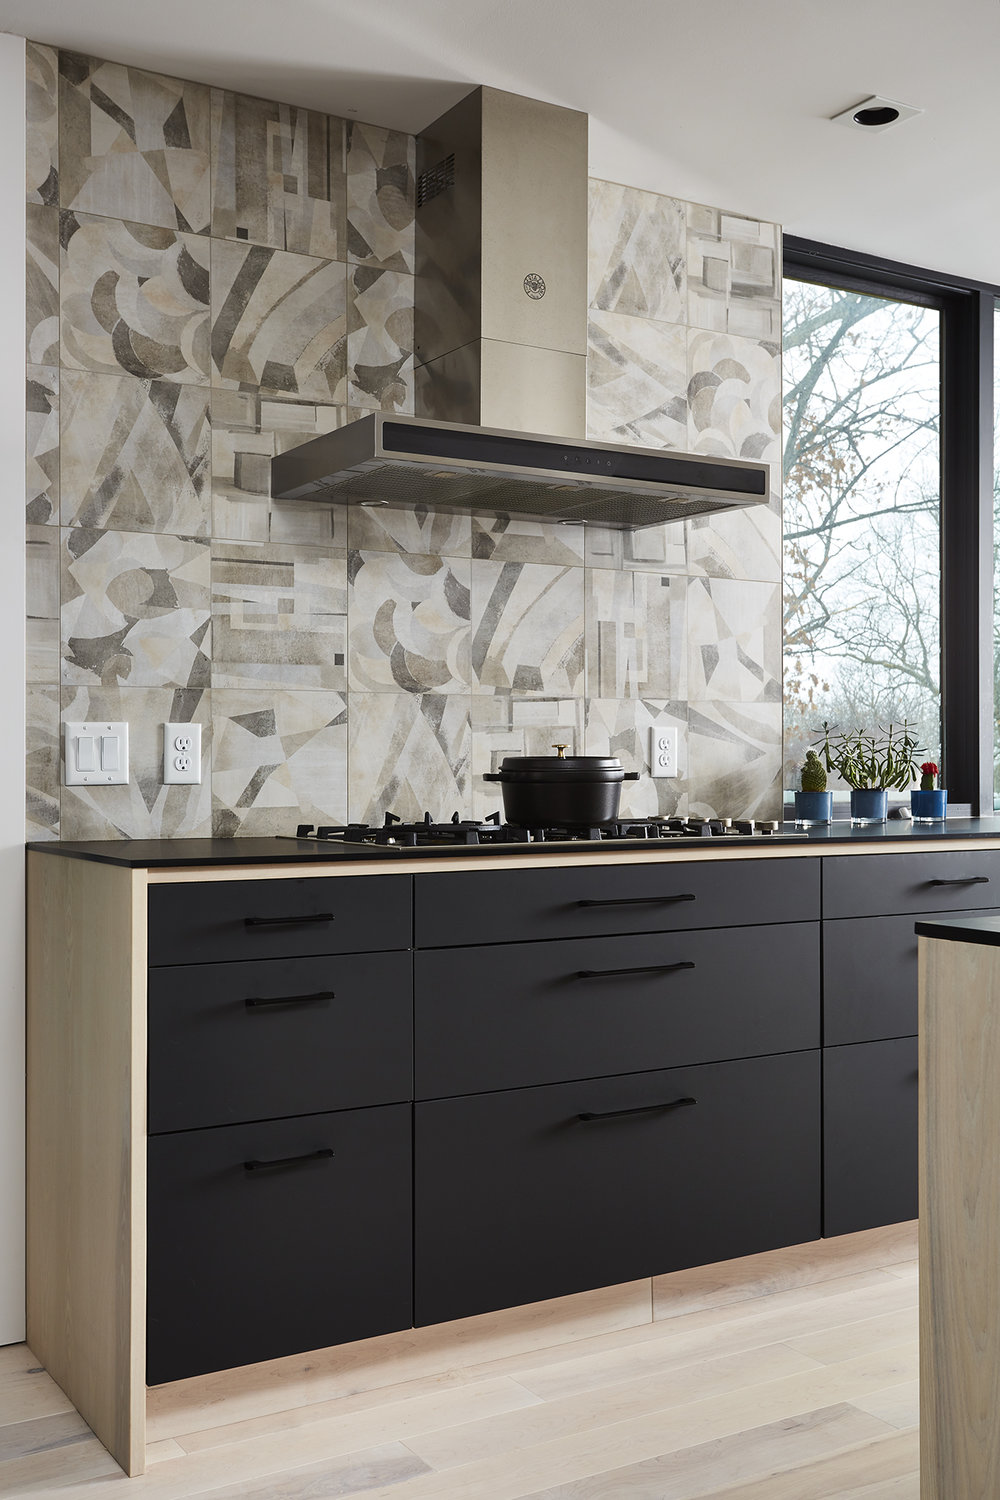 Black and wood cabinetry detail with graphic backsplash tile behind range